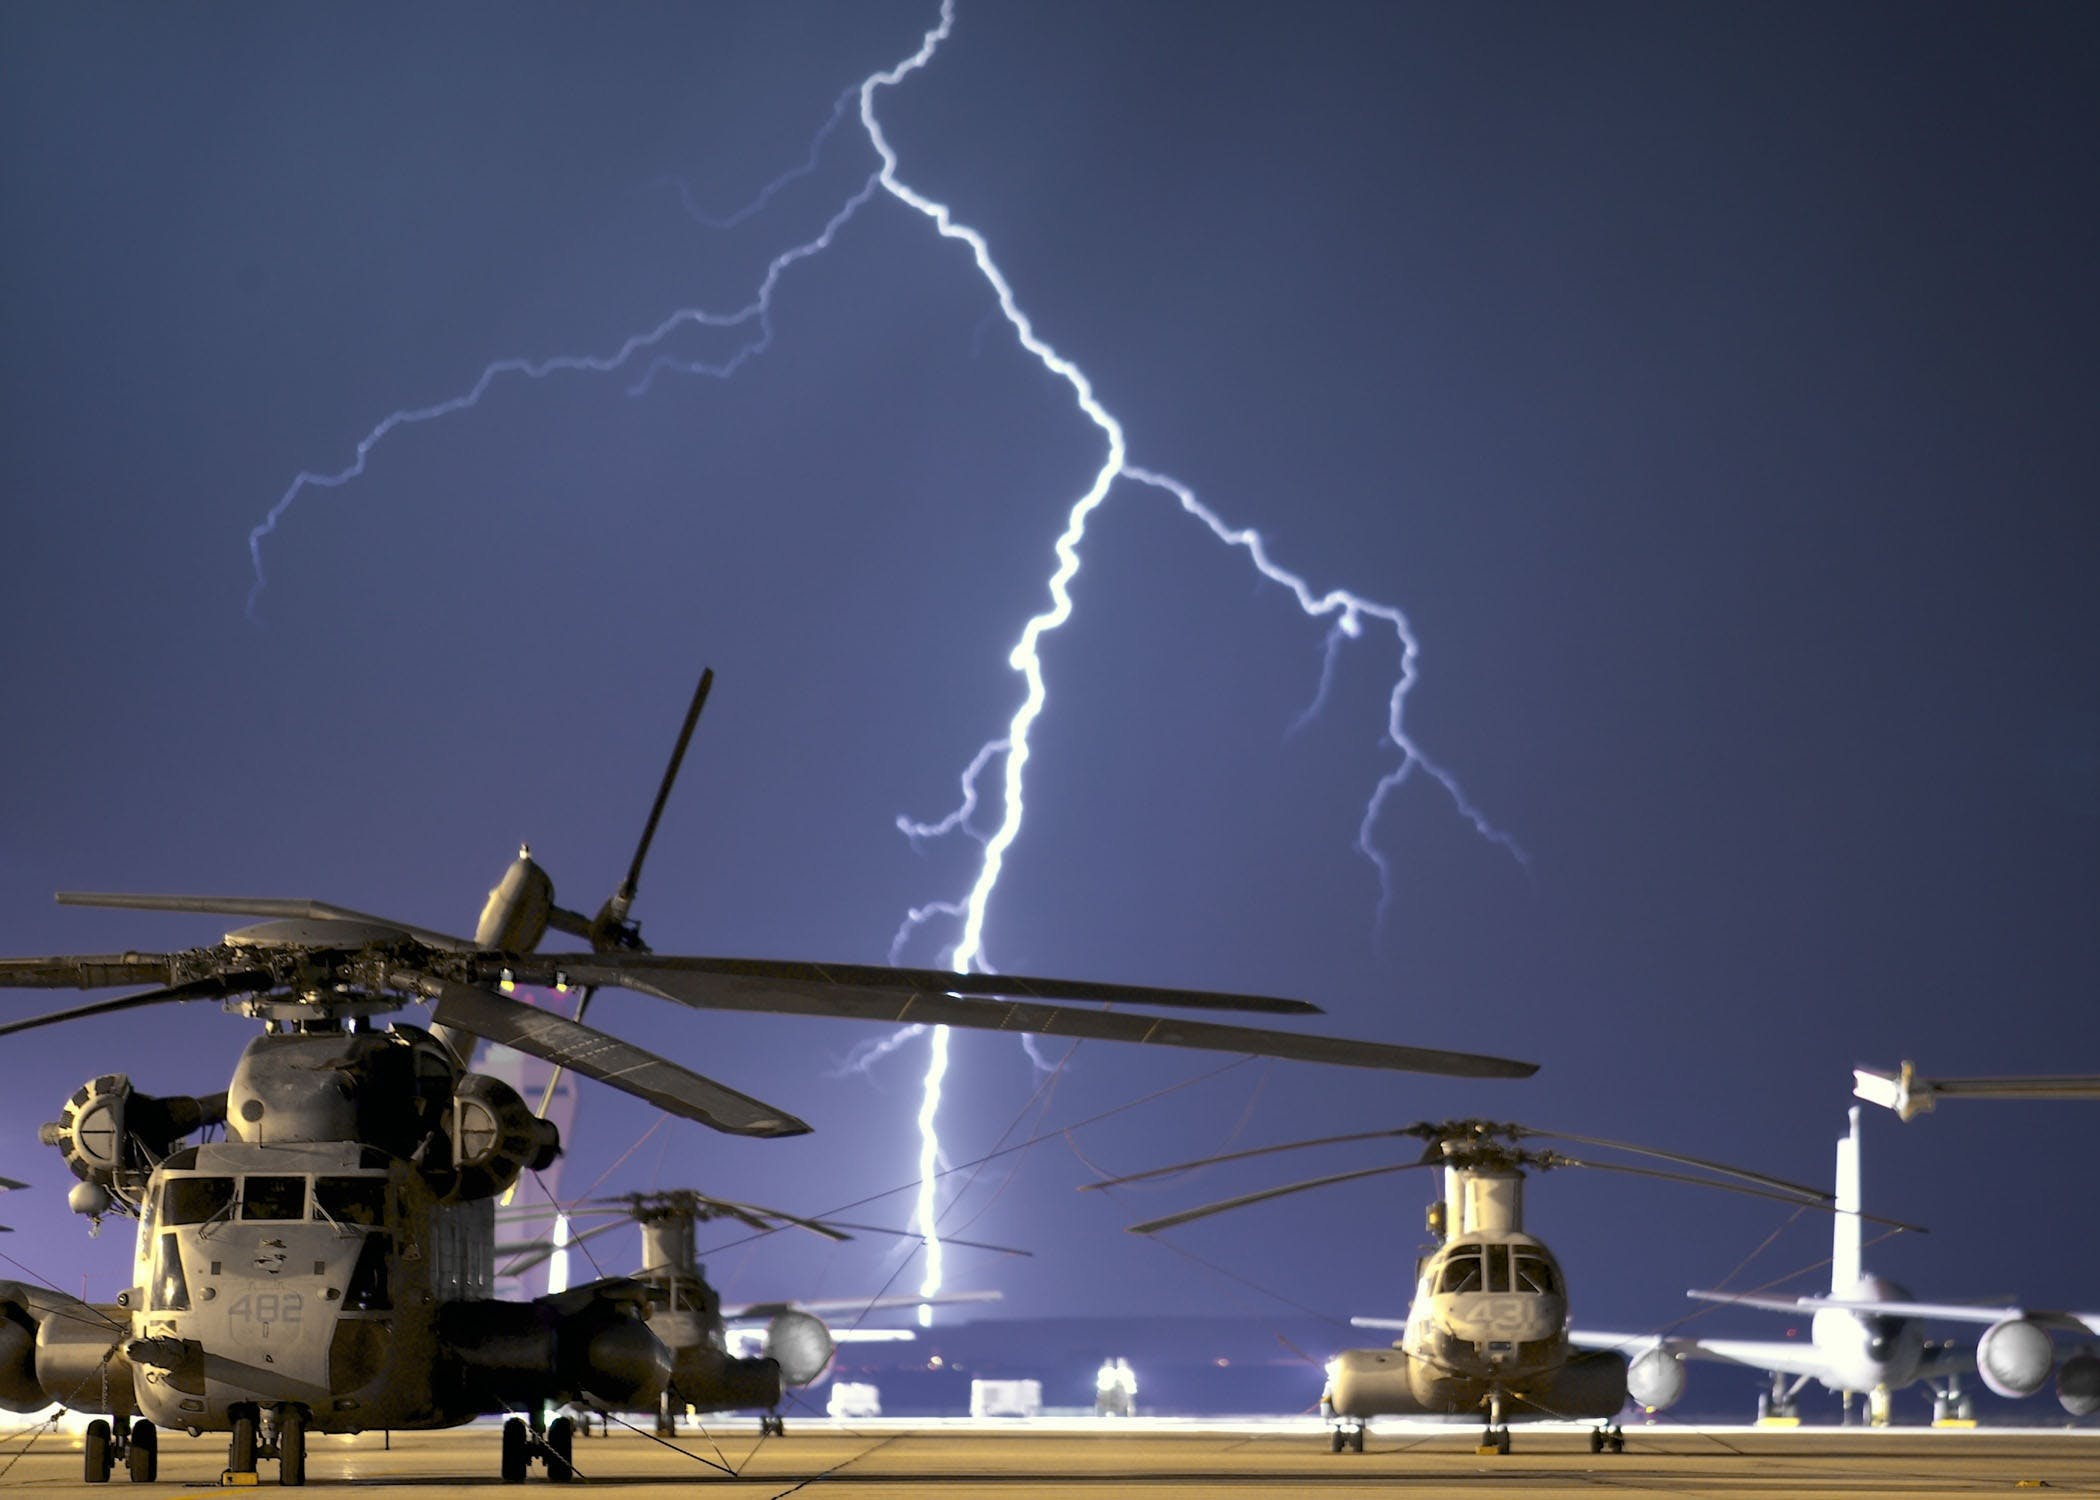 Lightning Near Grey Helicopter during Daytime